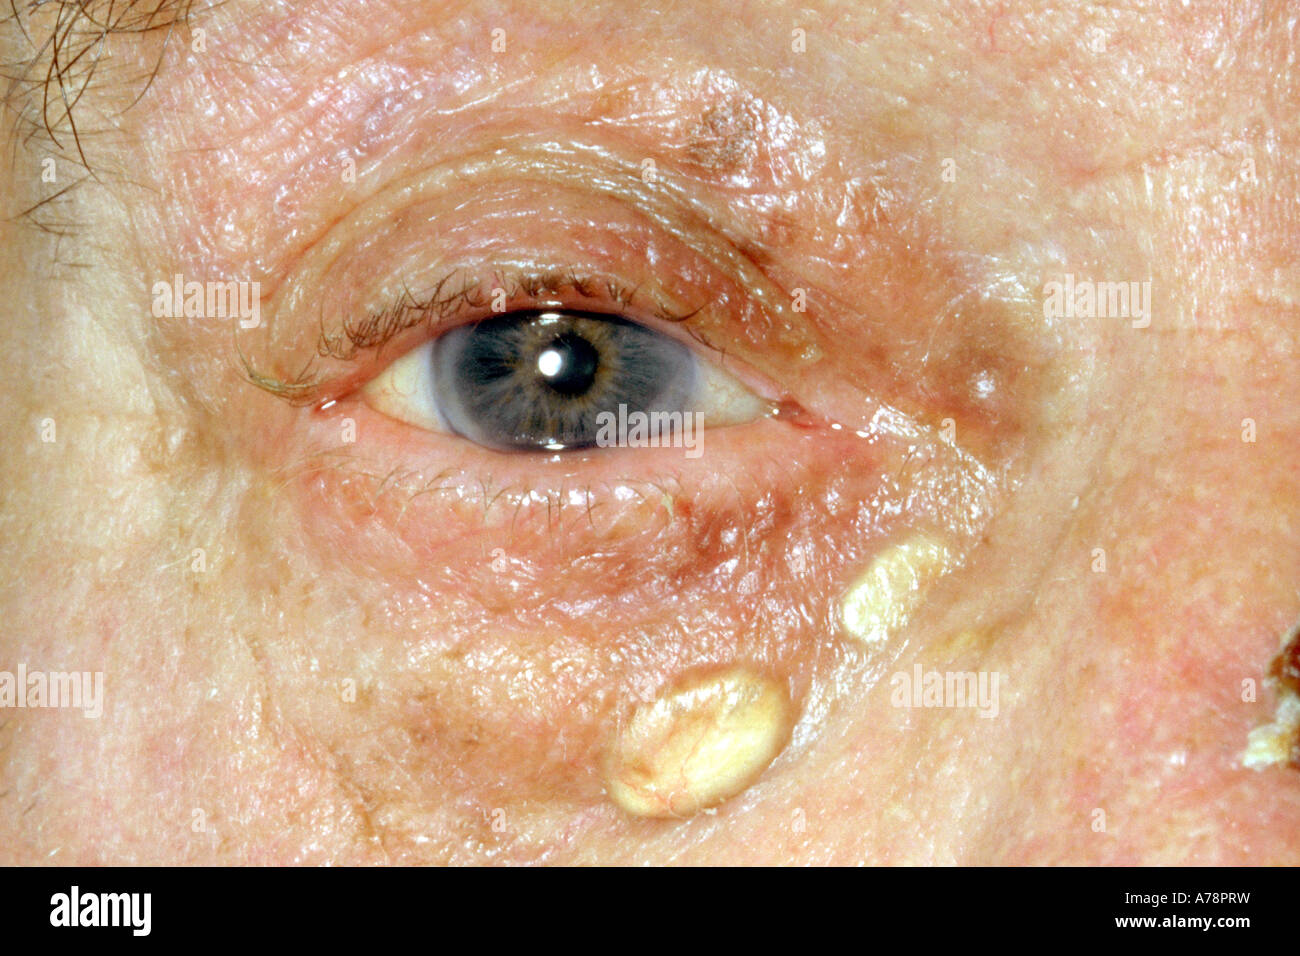 Xanthelasma palpebrarum - Stock Image